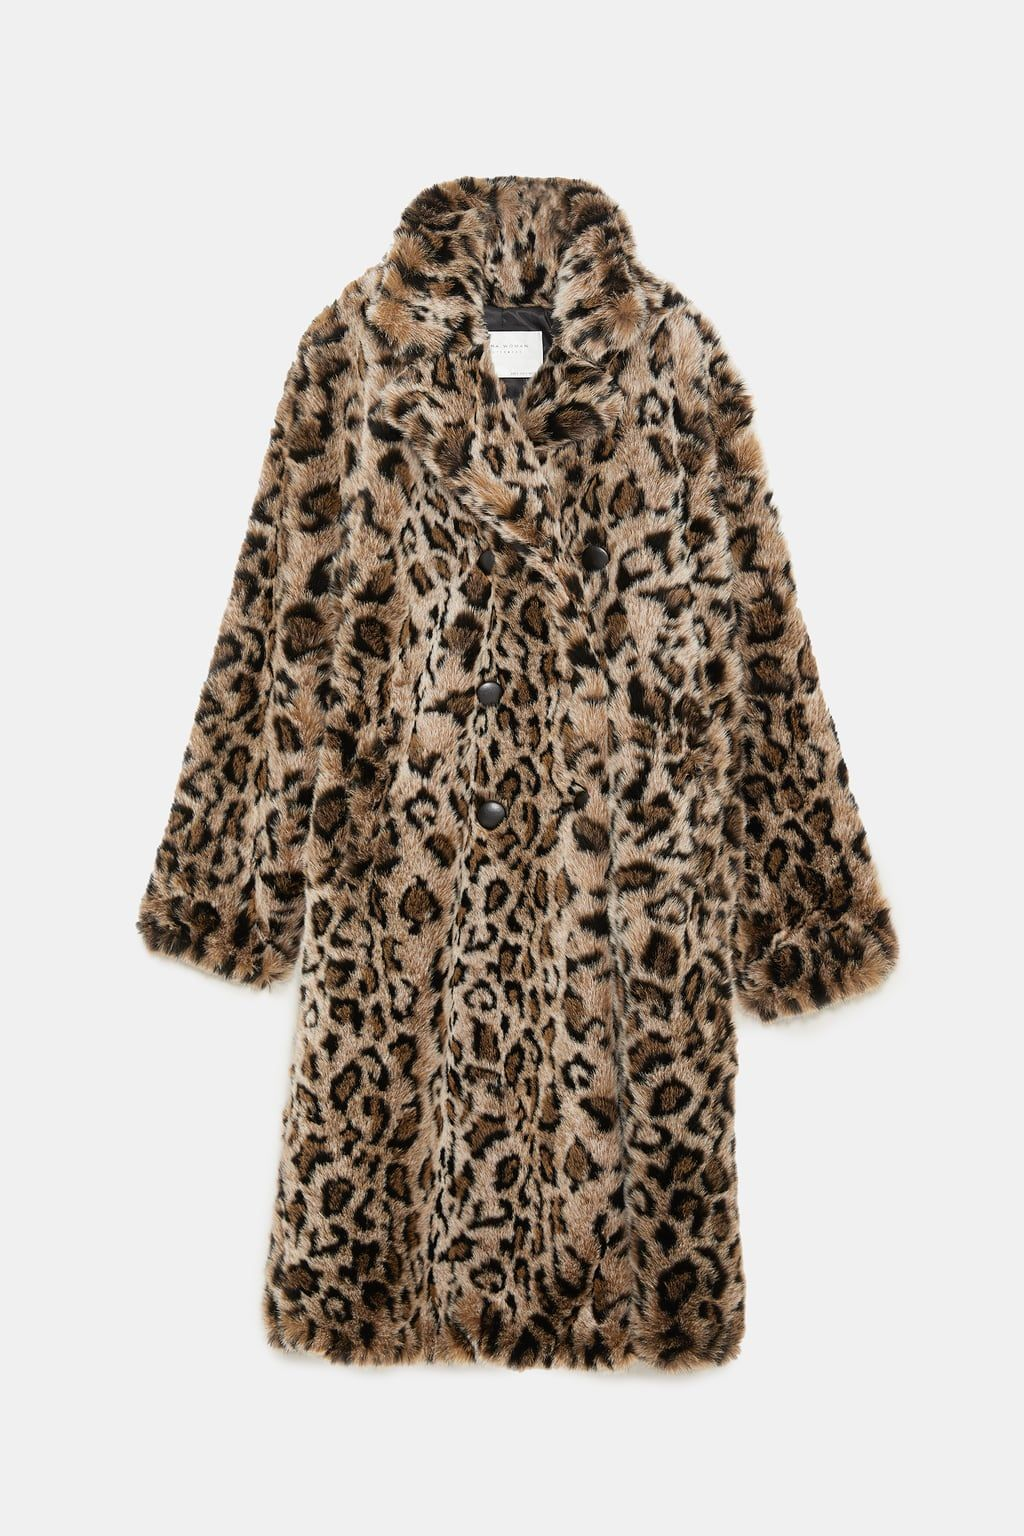 Image 8 Of Animal Print Textured Coat From Zara Leopard Print